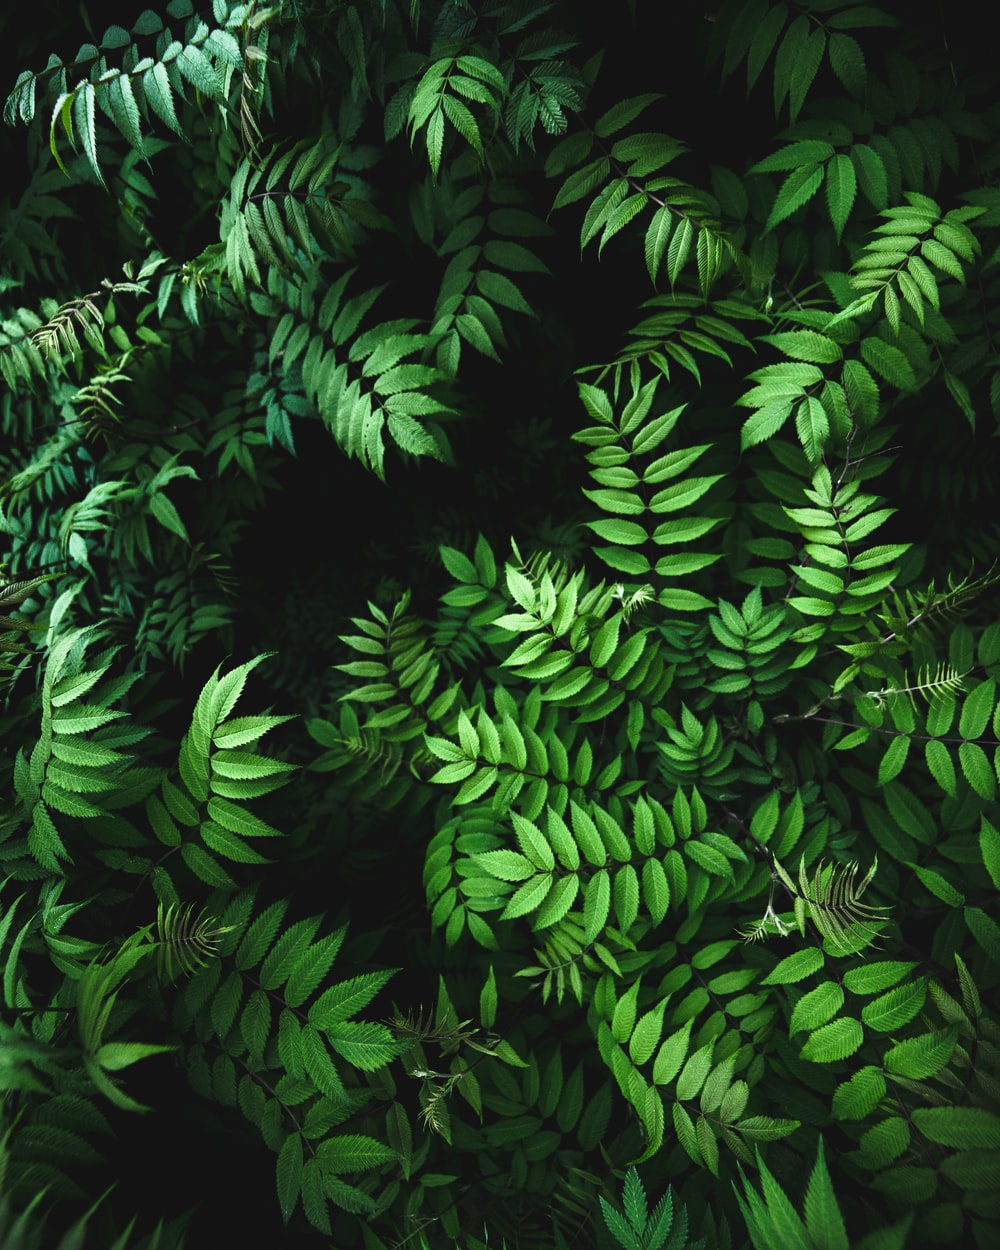 close up photo of green fern plant